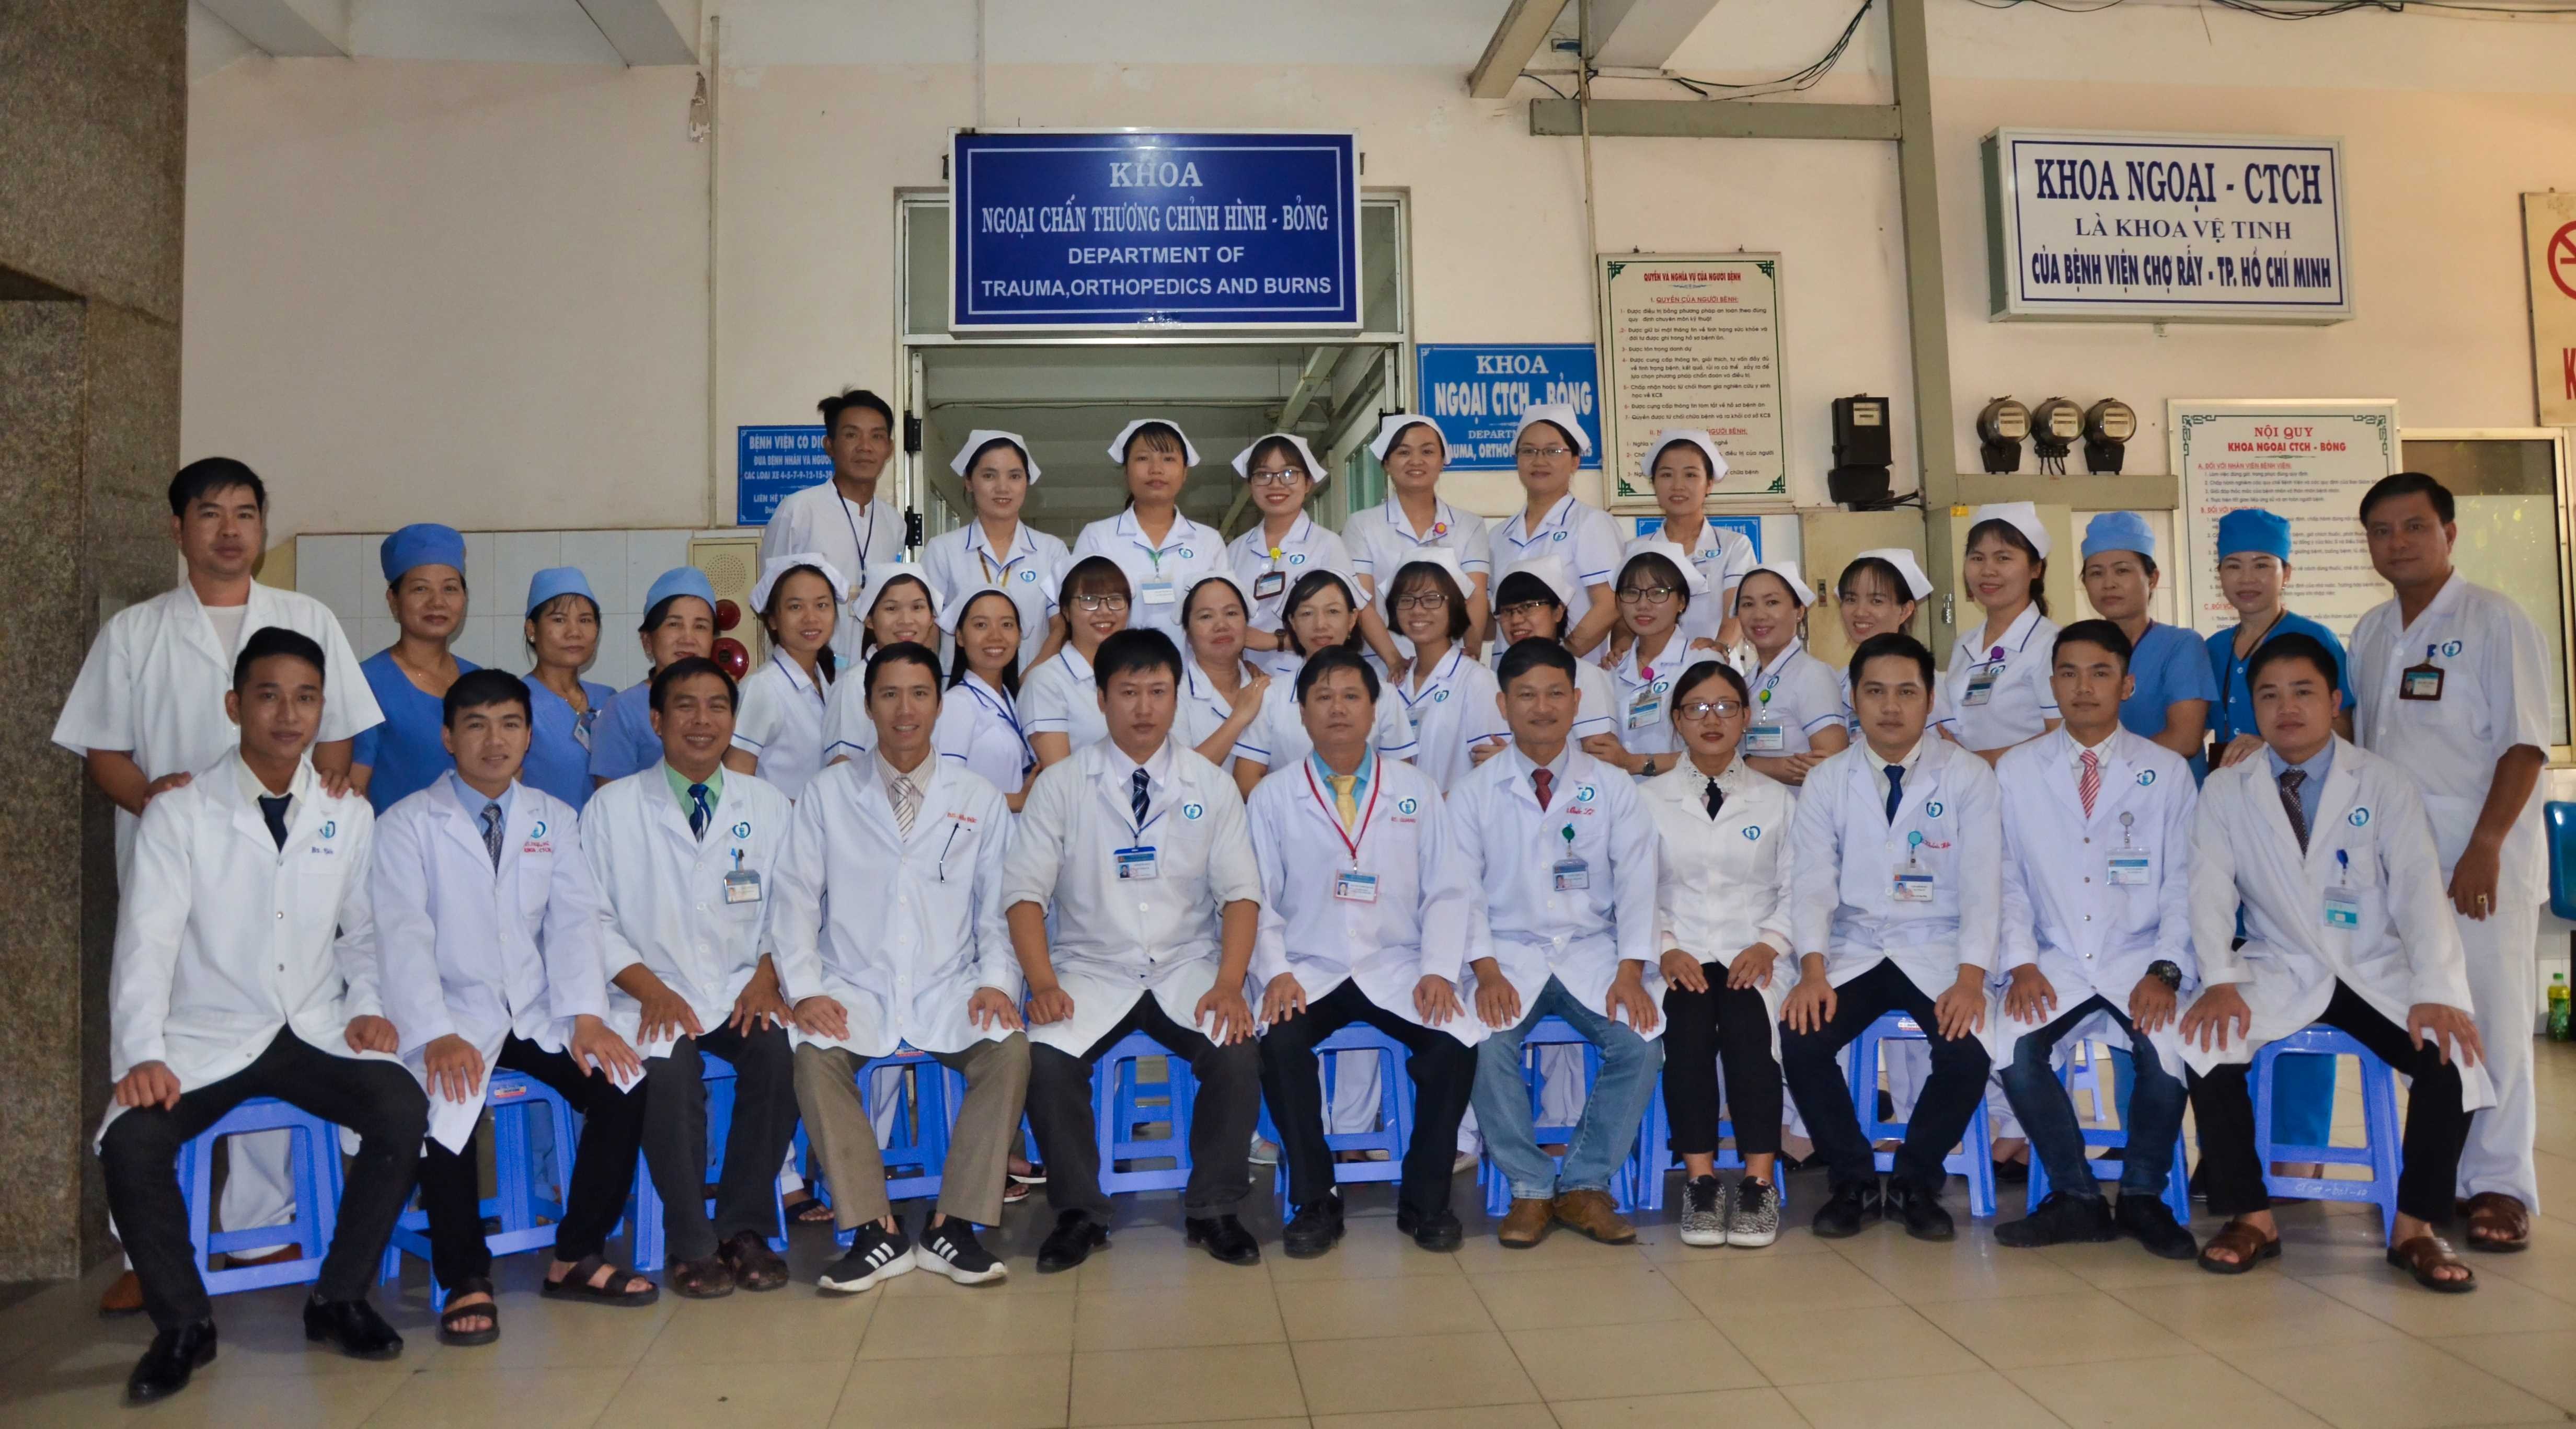 Khoa Ngoại CTCH-Bỏng (Department Of Trauma Orthopedics And Burns)